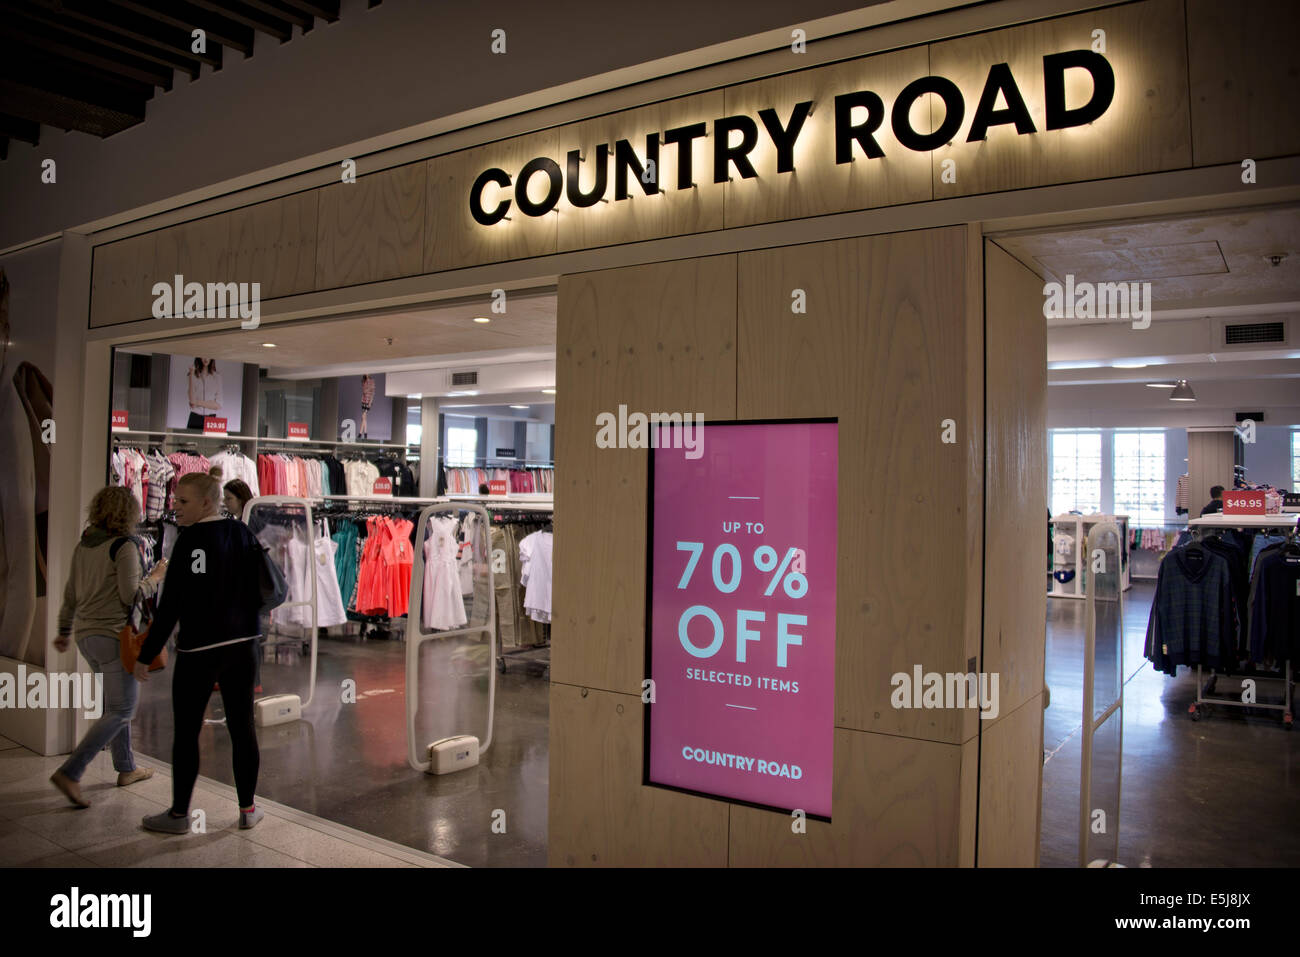 Home >Clothing & Accessories >Clothing > Country Road Promo Codes Country Road Promo Codes Flash sale: 20% off at Country Road. Show Deal. soon 72 0 0. SALE. DEAL. Save more on Children's Products, Homeware and more. Show Deal. soon 0 0. Coupons for Stores Related to bestkfilessz6.ga